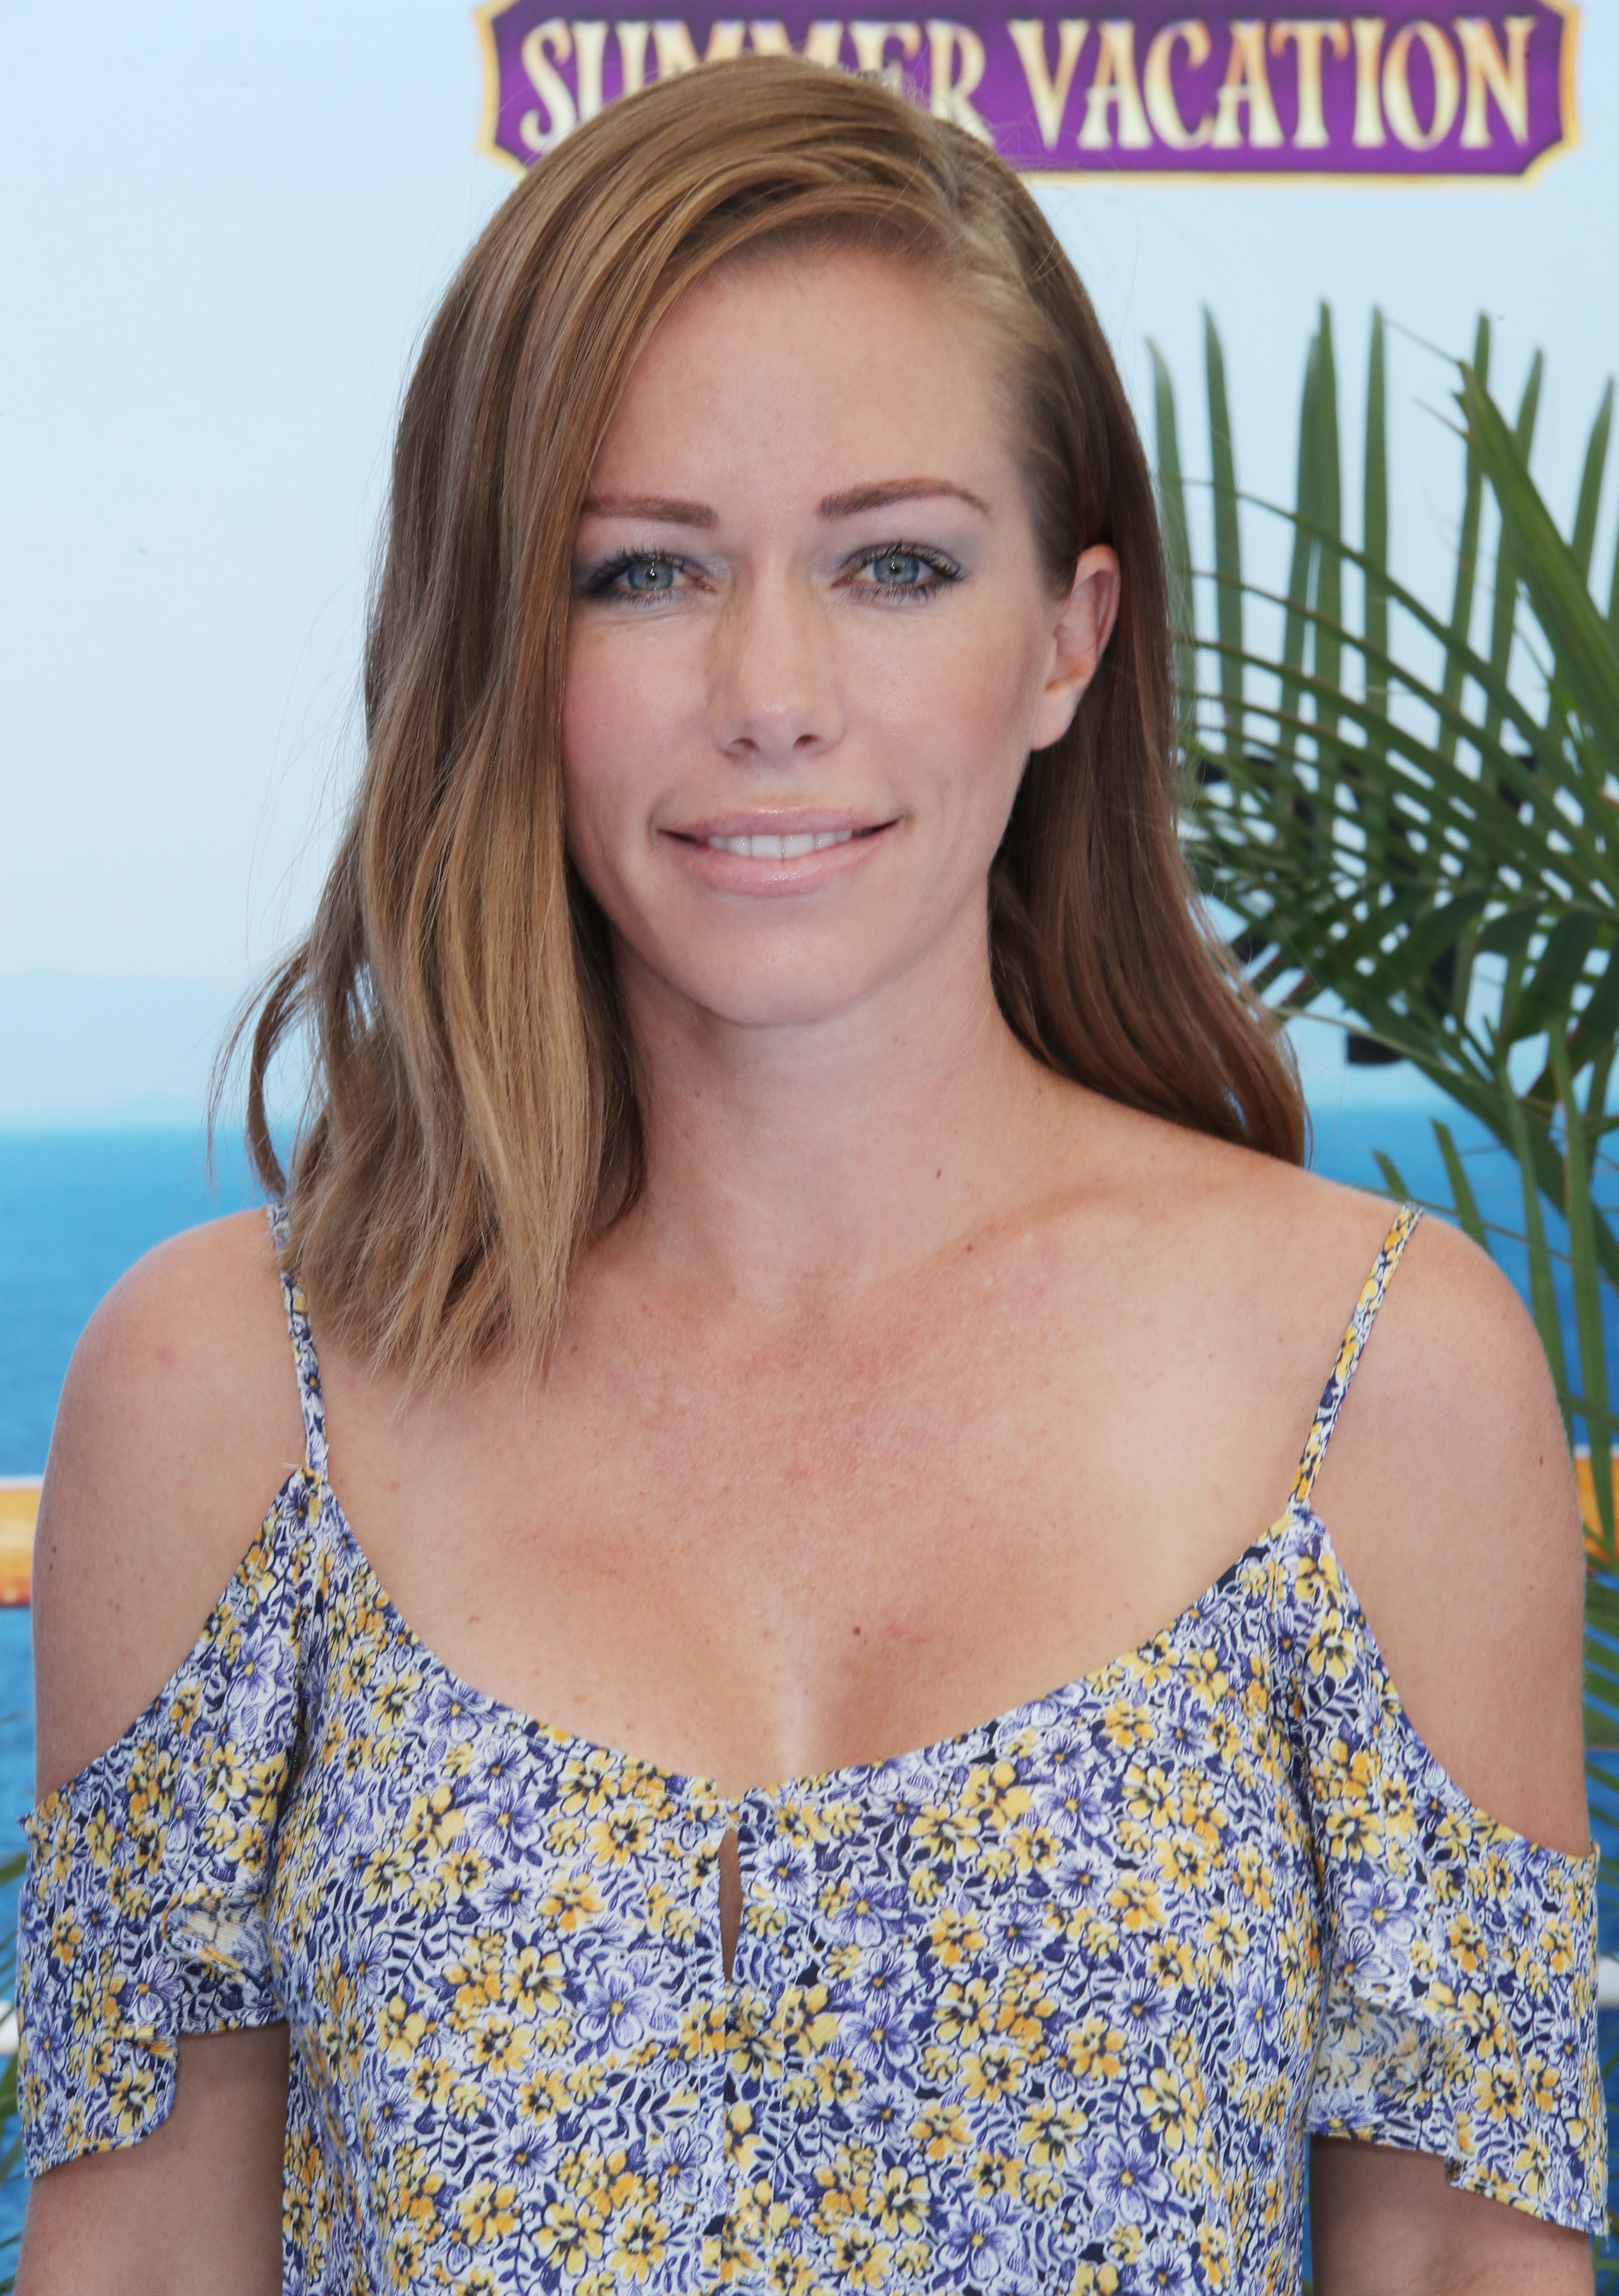 """Kendra Wilkinson attends the """"Hotel Transylvania 3: Summer Vacation"""" premiere in Los Angeles on June 30, 2018."""